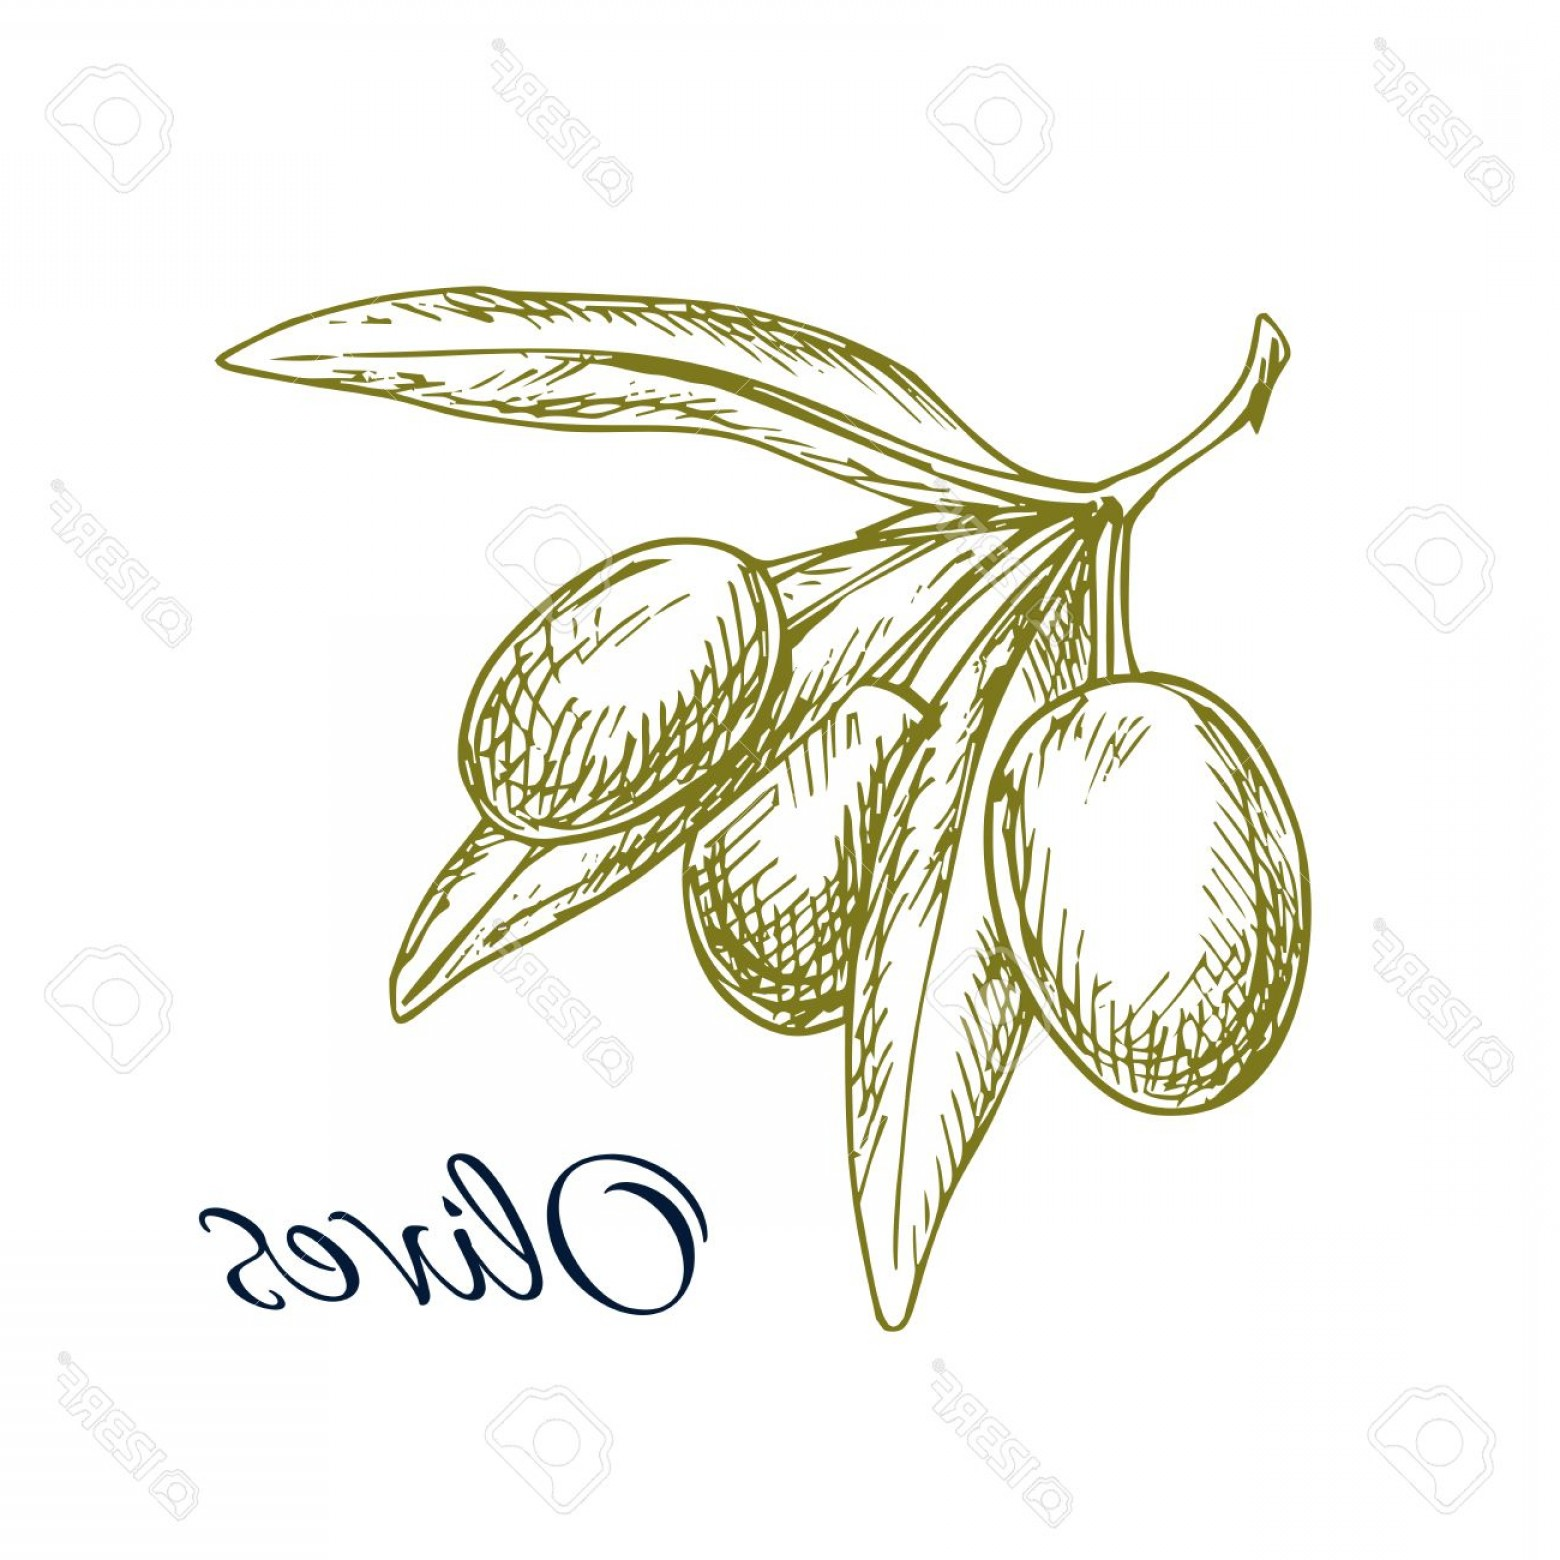 Olive Vector: Photostock Vector Vector Sketch Of Green Olive Bunch Icon Of Branch With Green Olives Vector Isolated Design For Olive